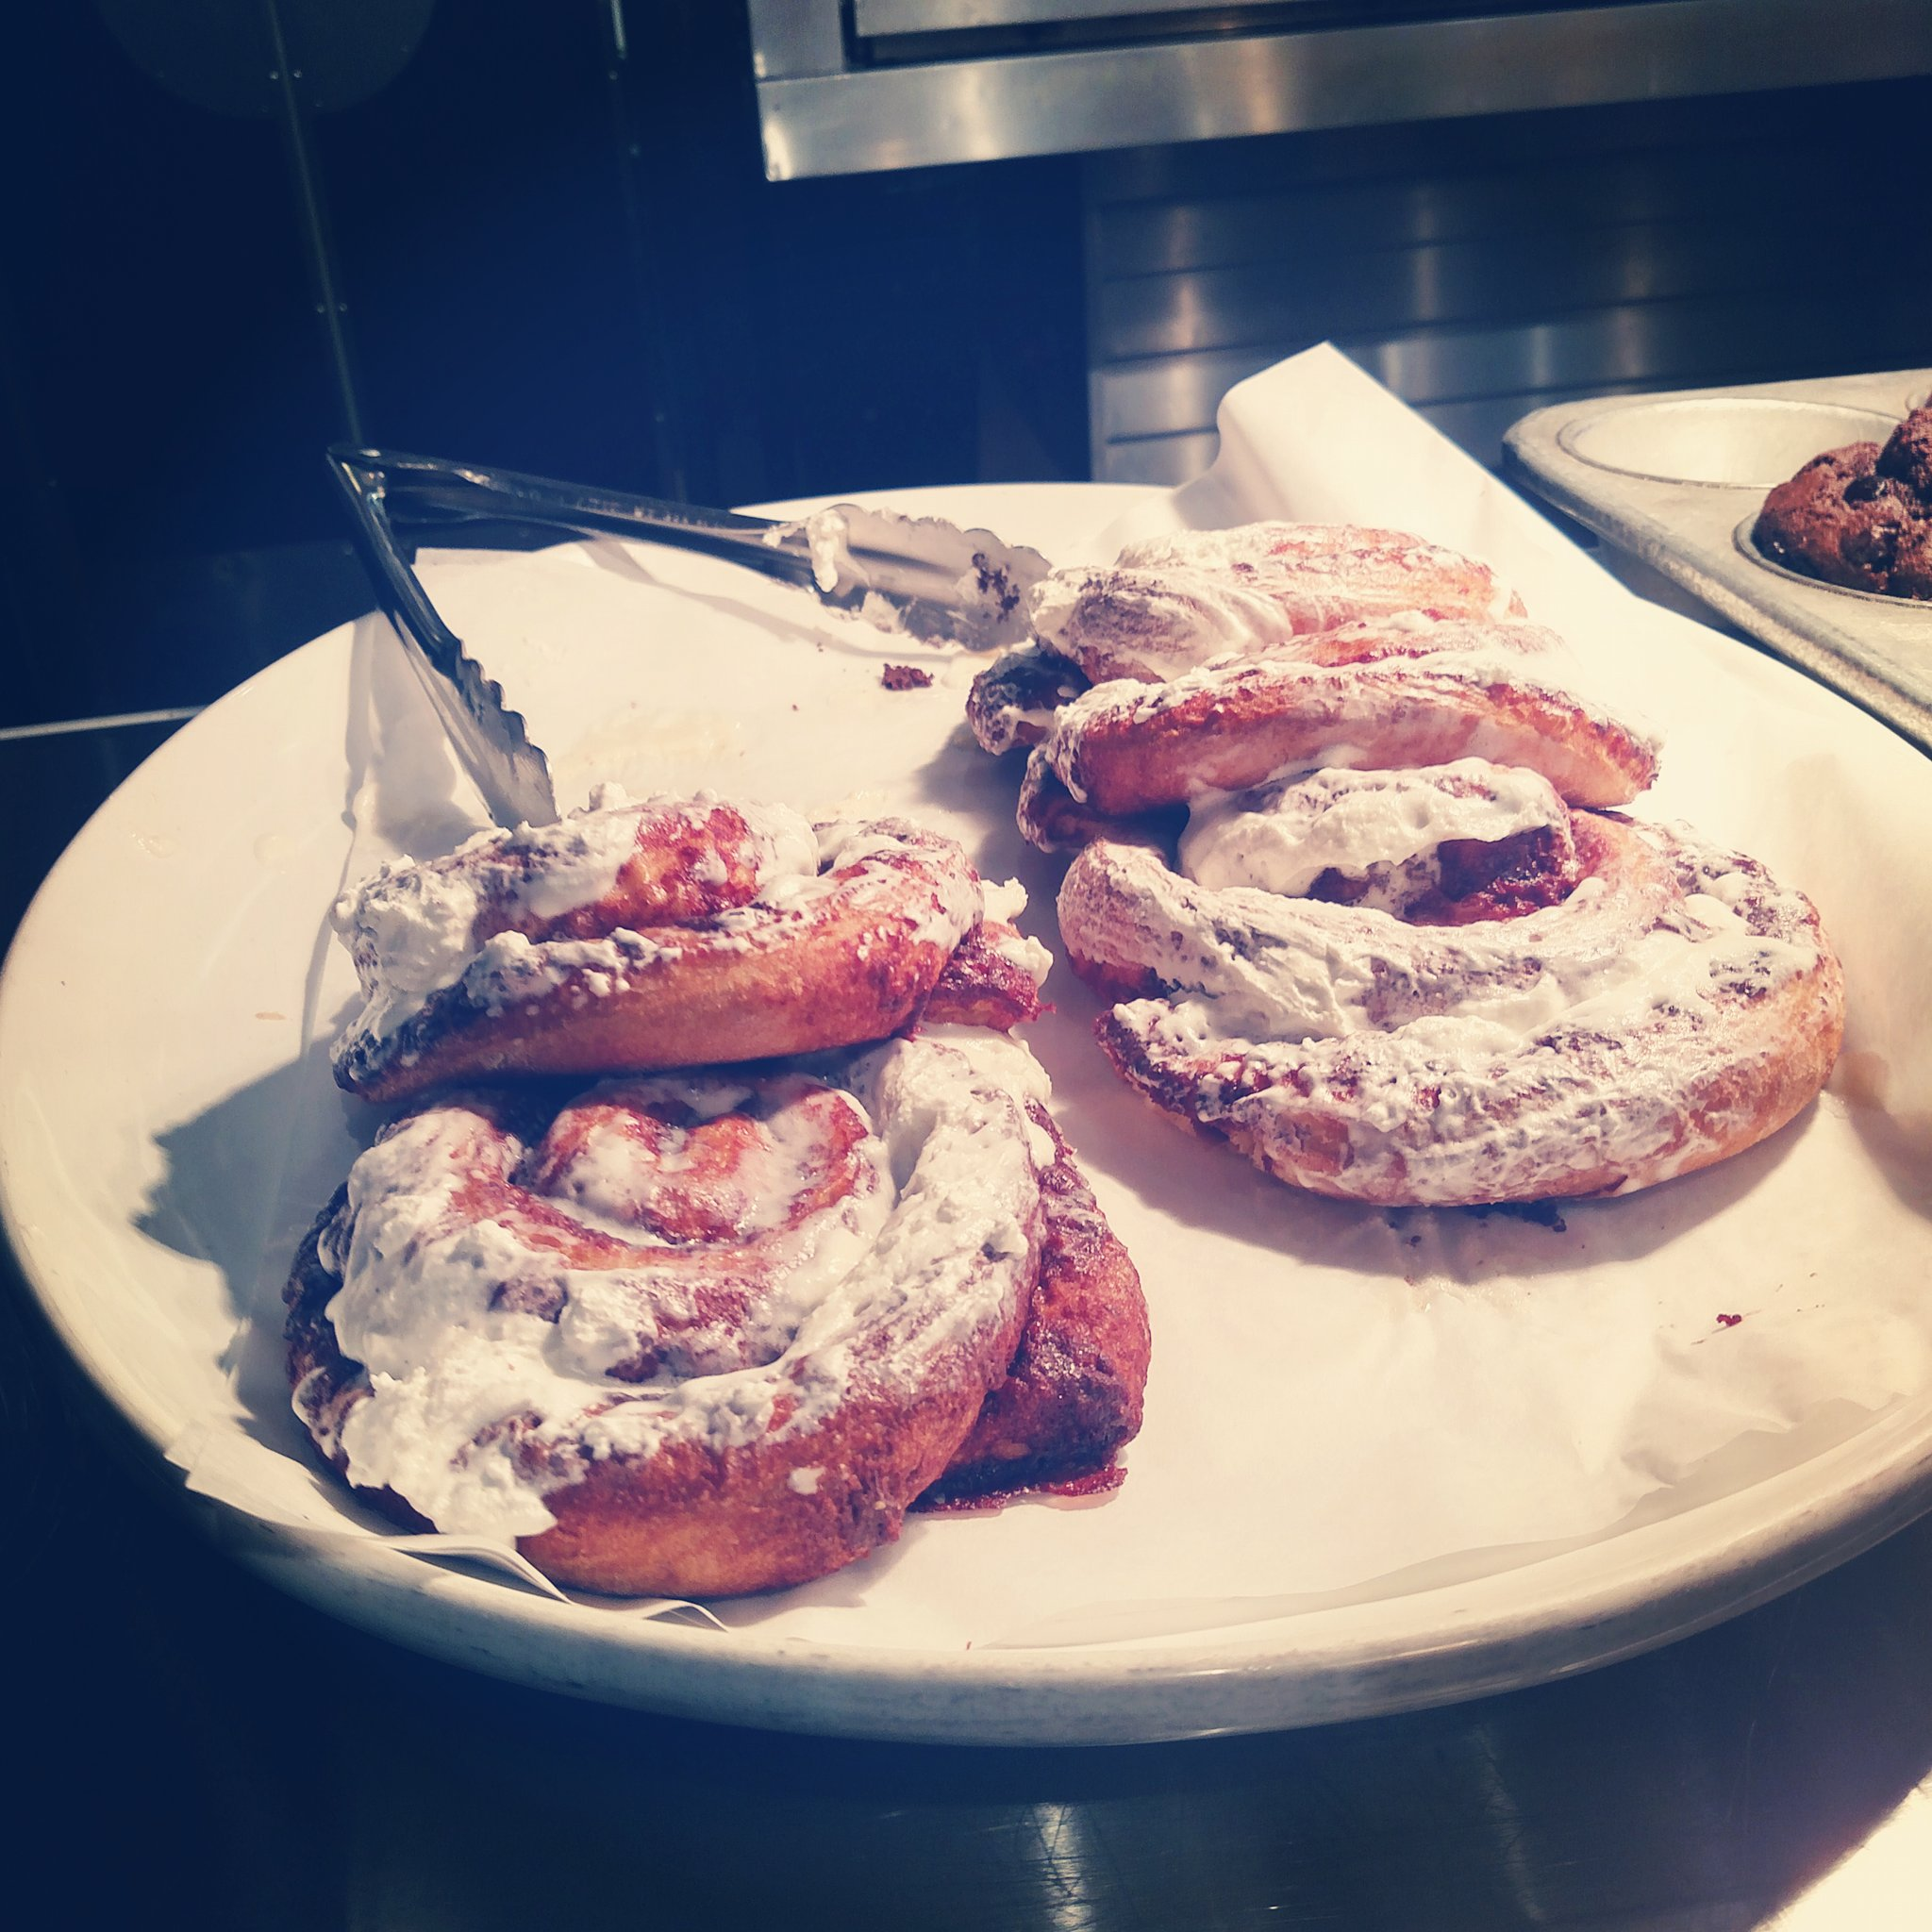 I had to pass on these cinnamon roll beauties, though :/